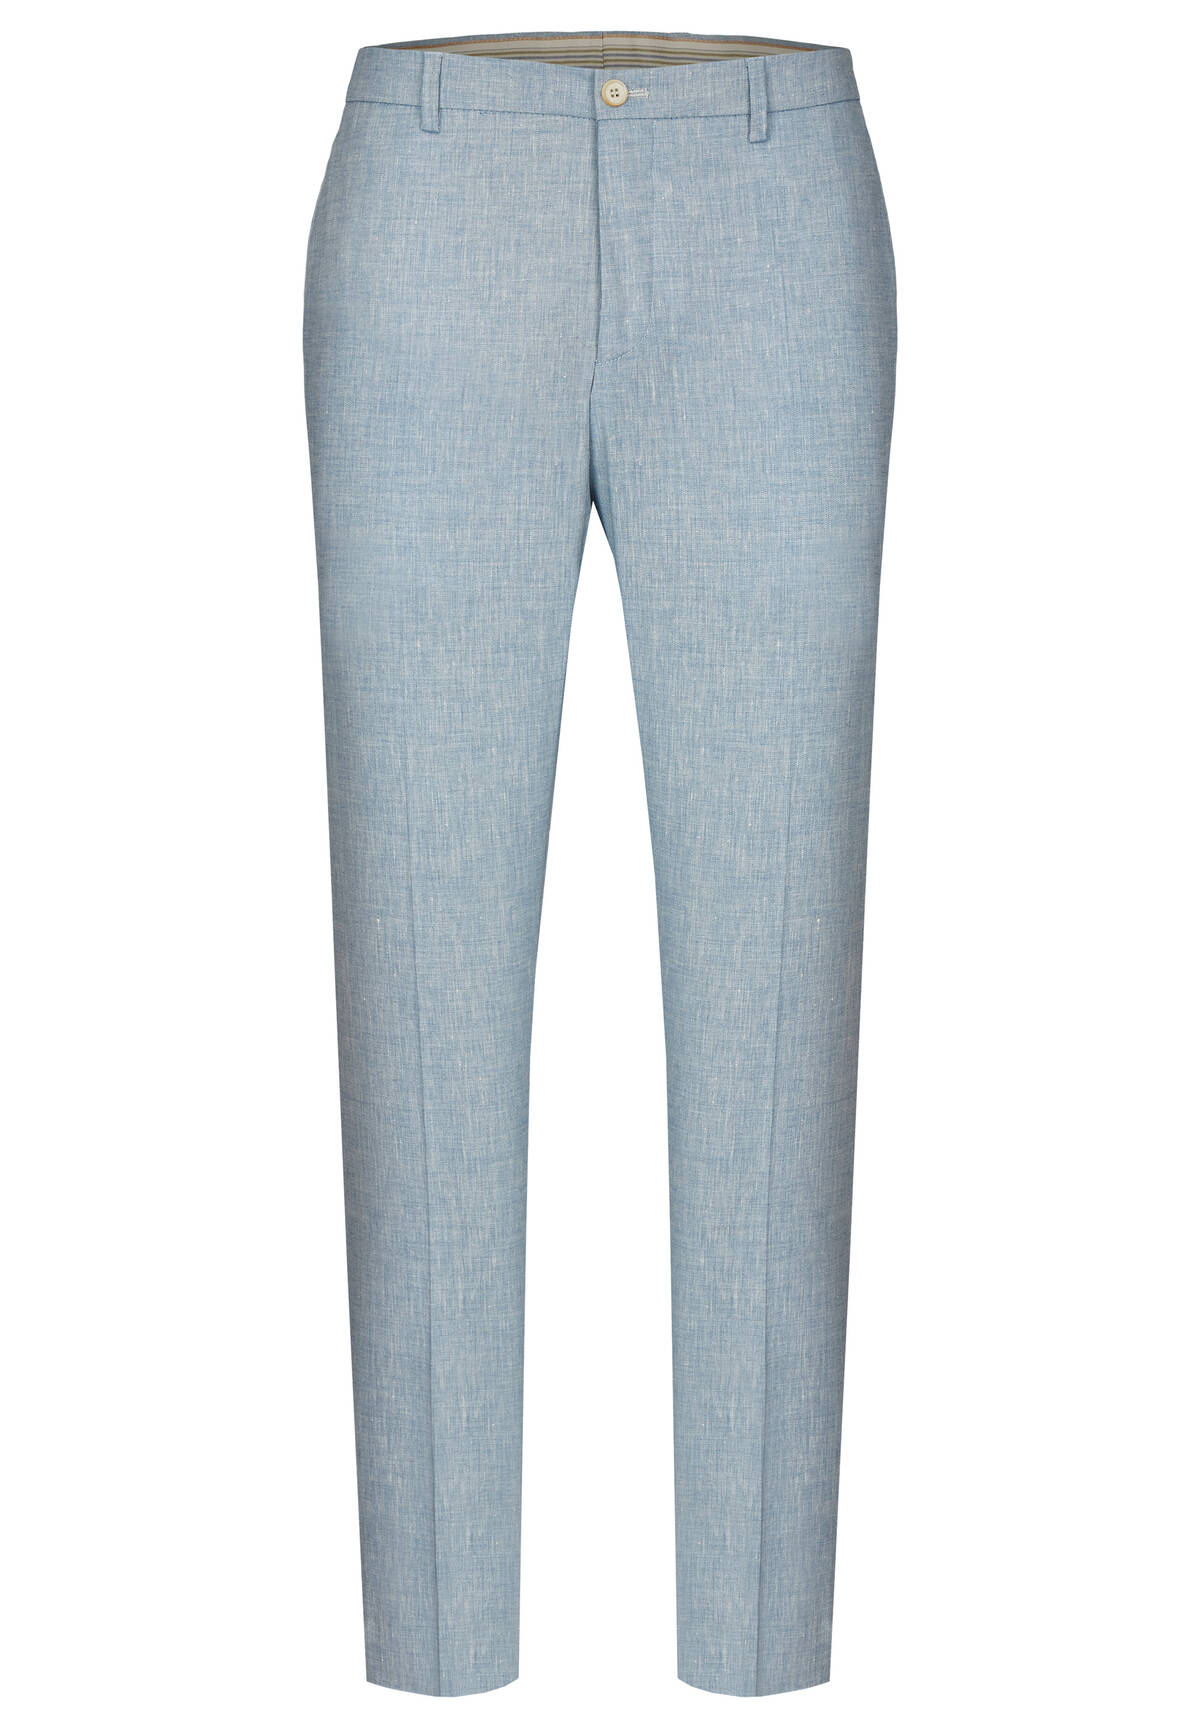 XTENSION Anzug-Hose / TROUSERS DH-XTENSION